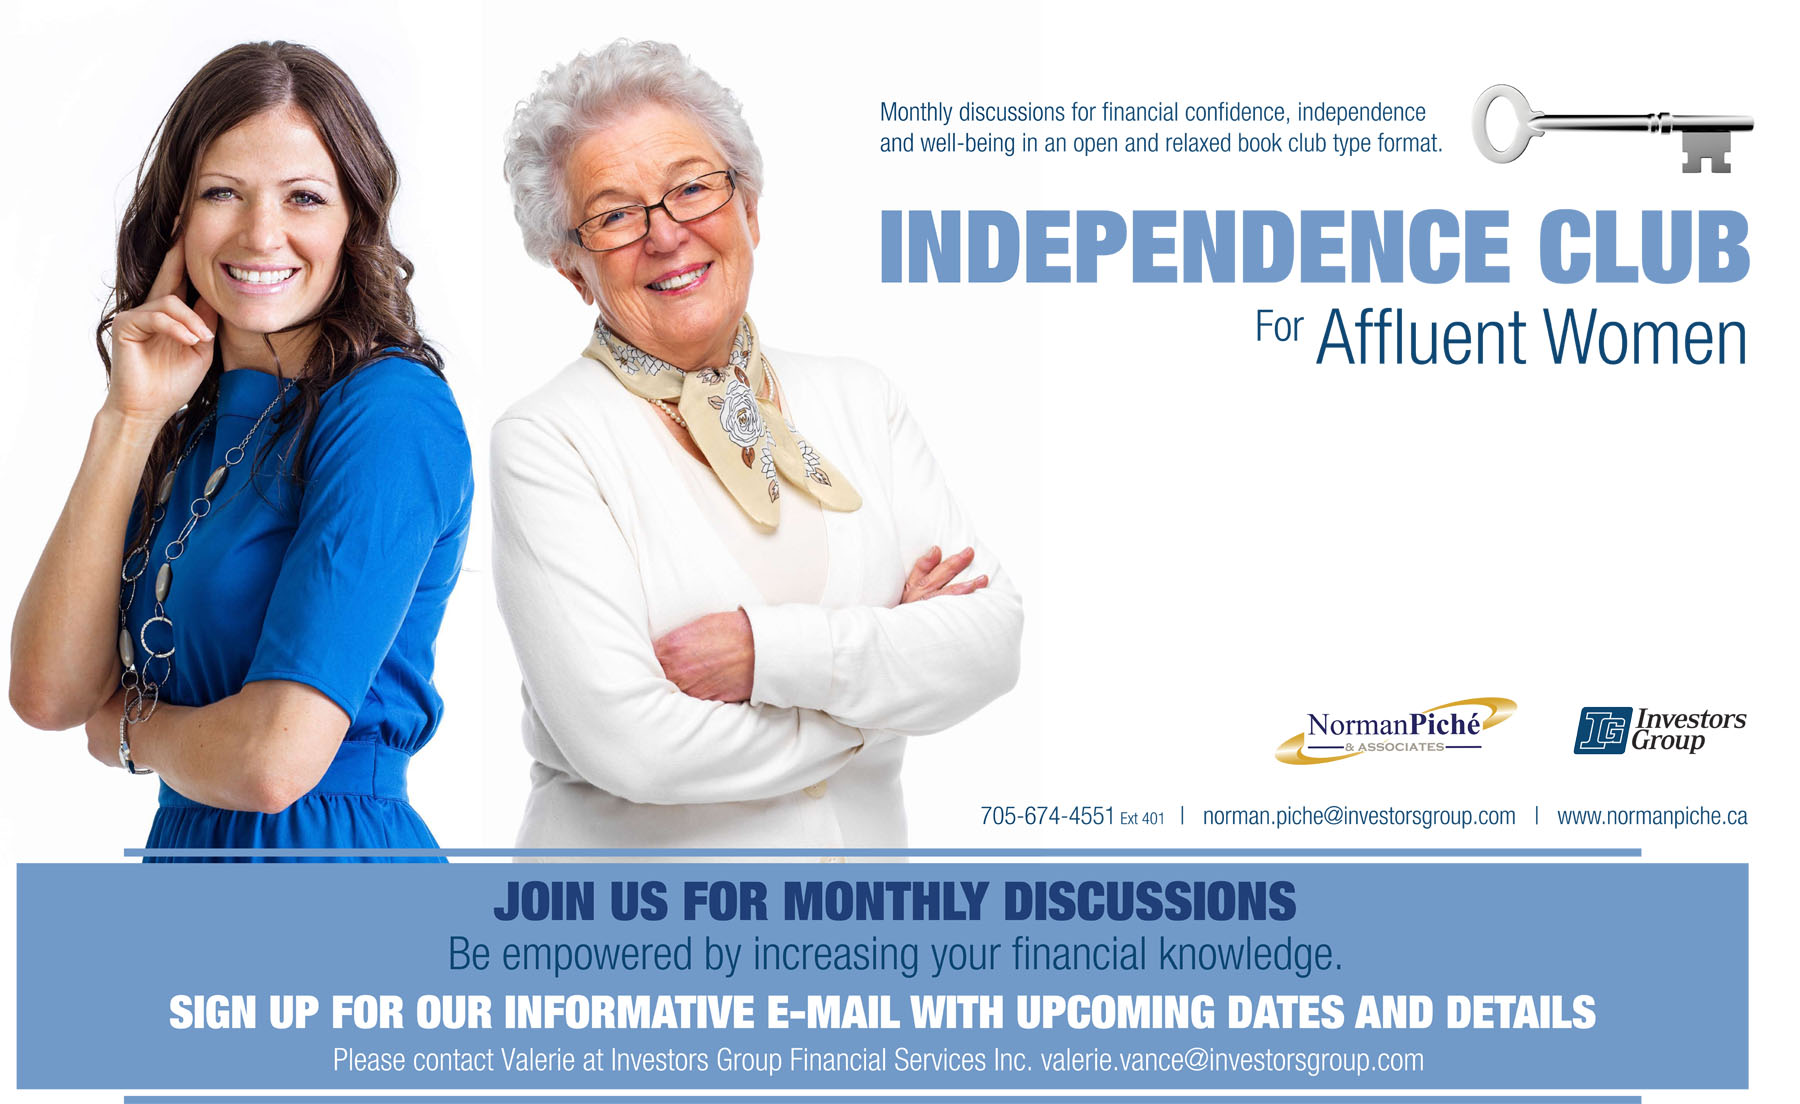 Independence Club for Affluent Women